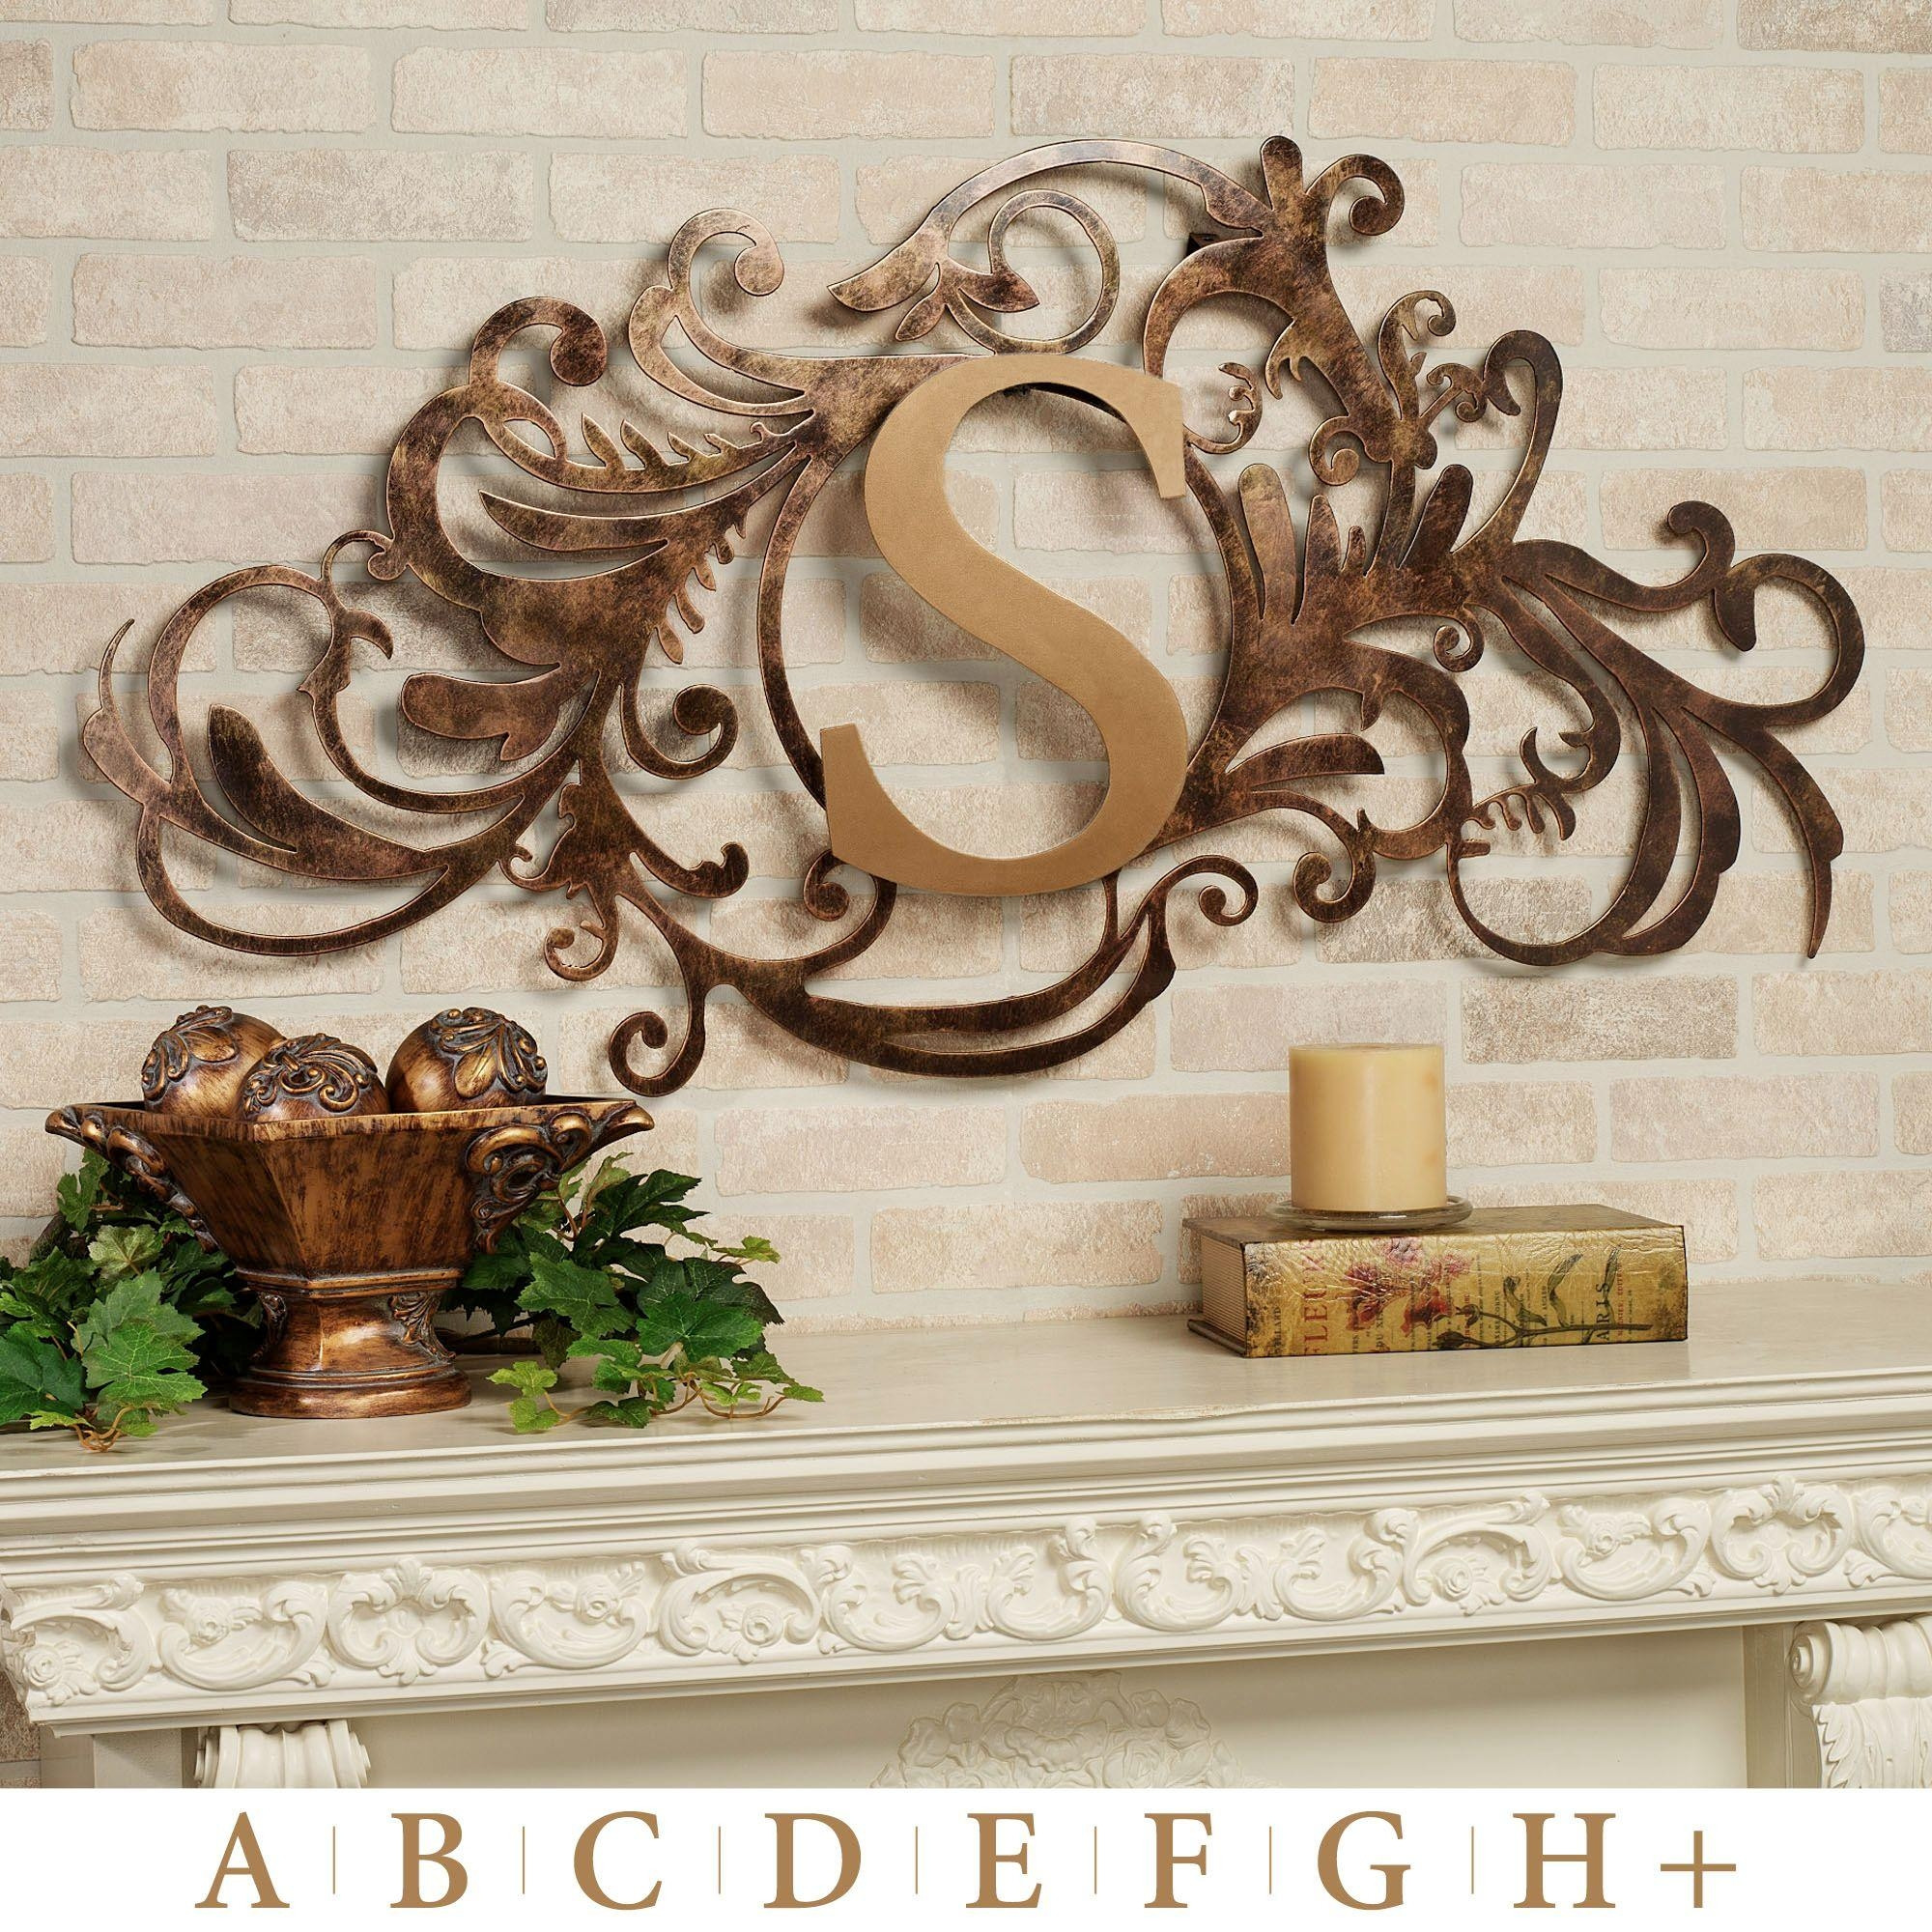 Best ideas about Wall Art Decor . Save or Pin 2019 Latest Tar Metal Wall Art Now.